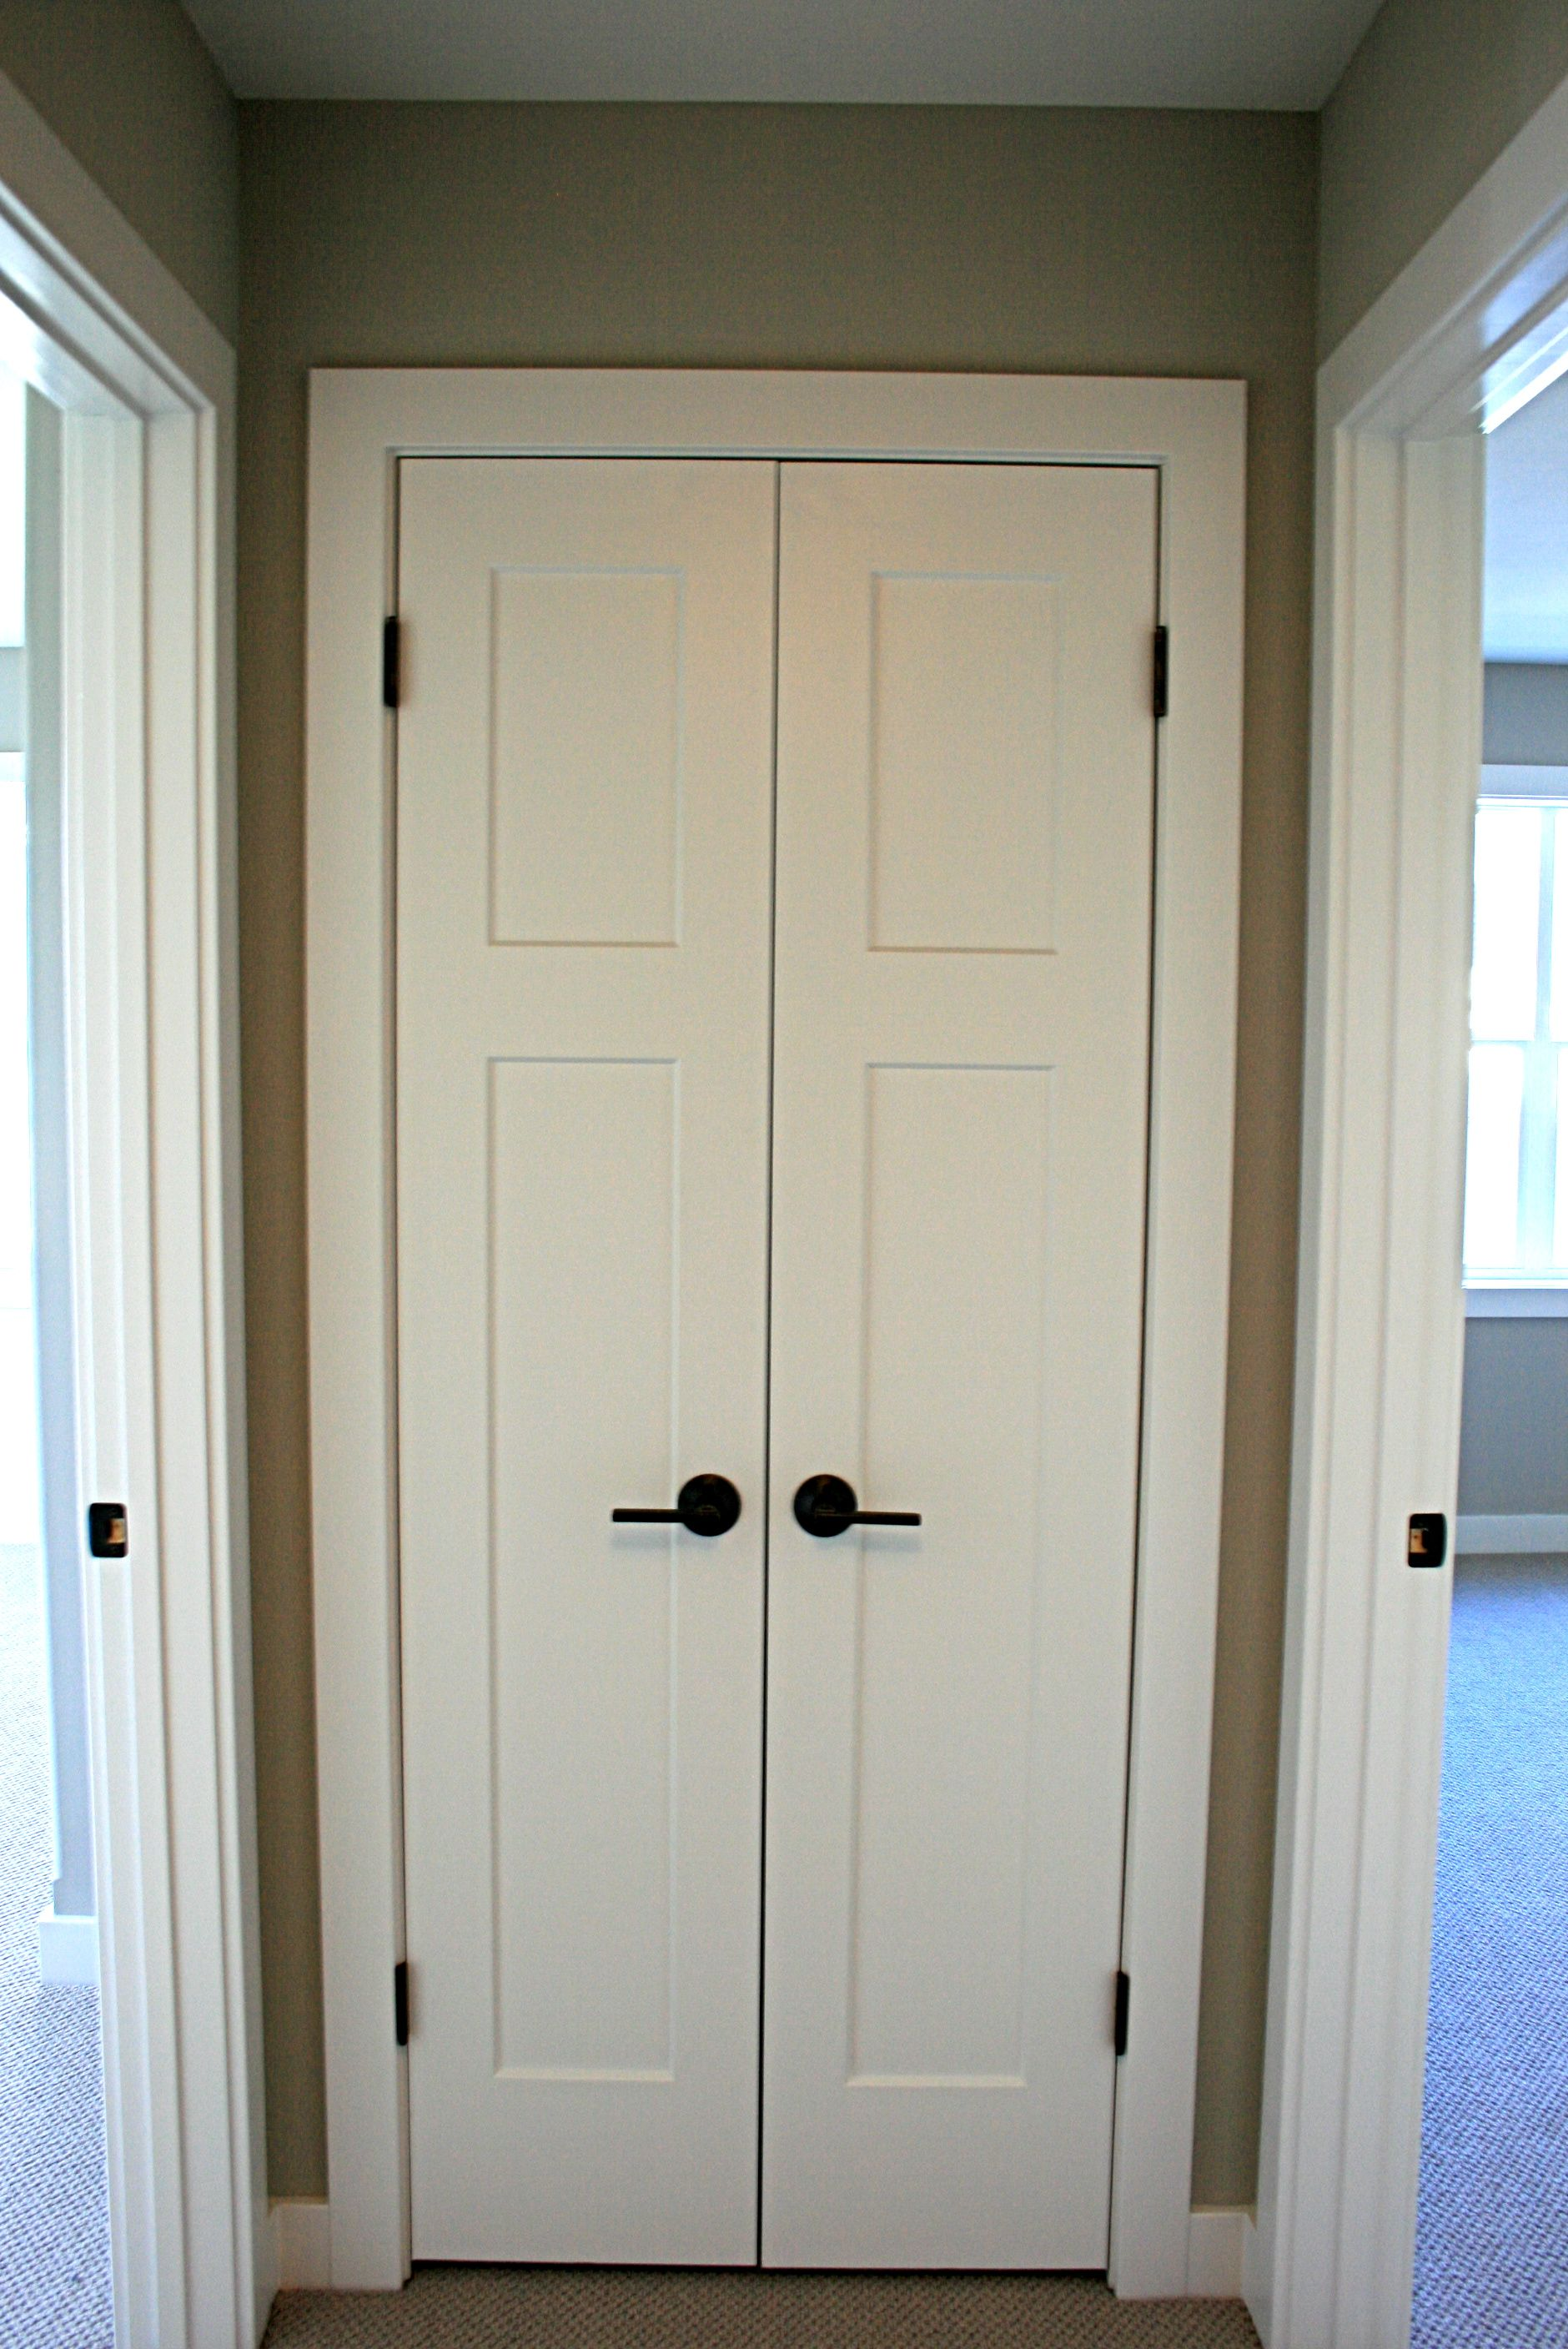 French Doors Are An Option You Don T See Very Often Louvered Or Pocket Doors Hiding Laundry Facil White Interior Doors French Closet Doors Bifold Closet Doors